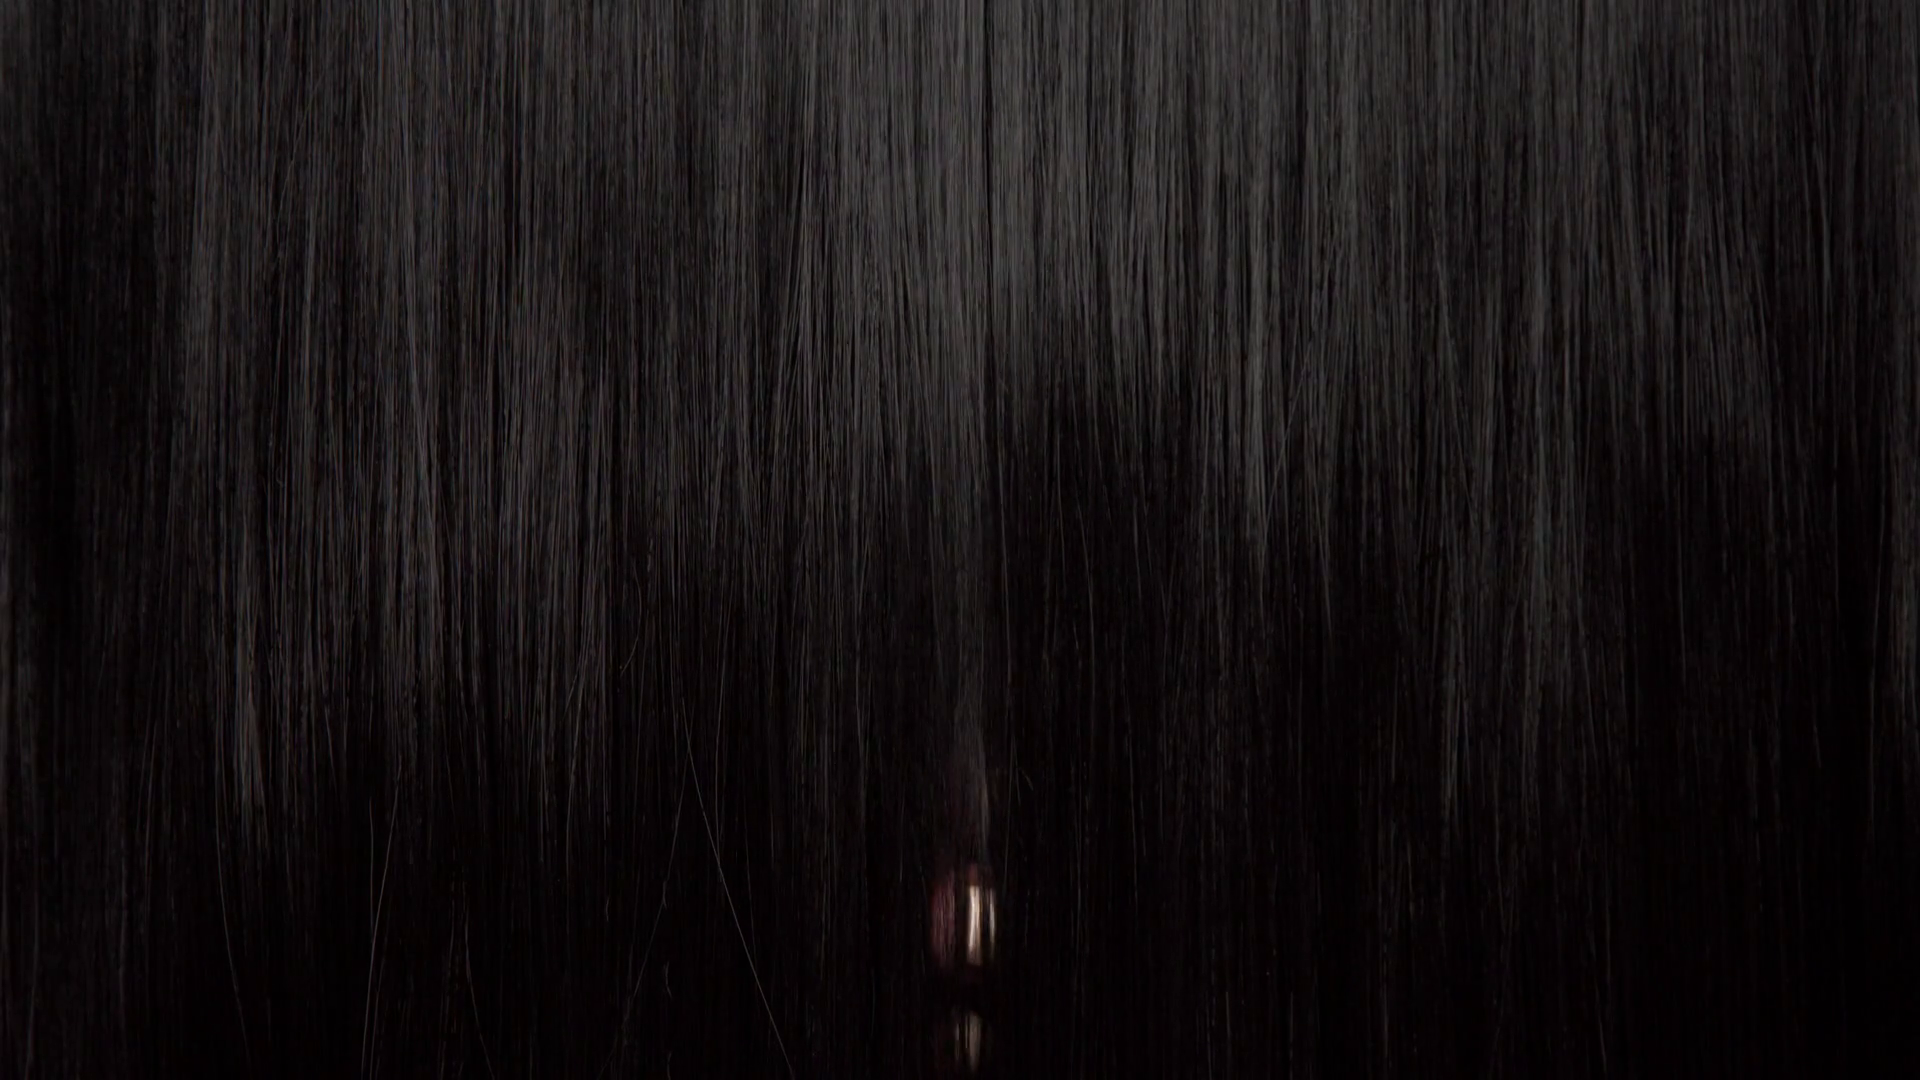 Hair texture background, no person. Black shiny hair Hands touching it Stock Video Footage ...